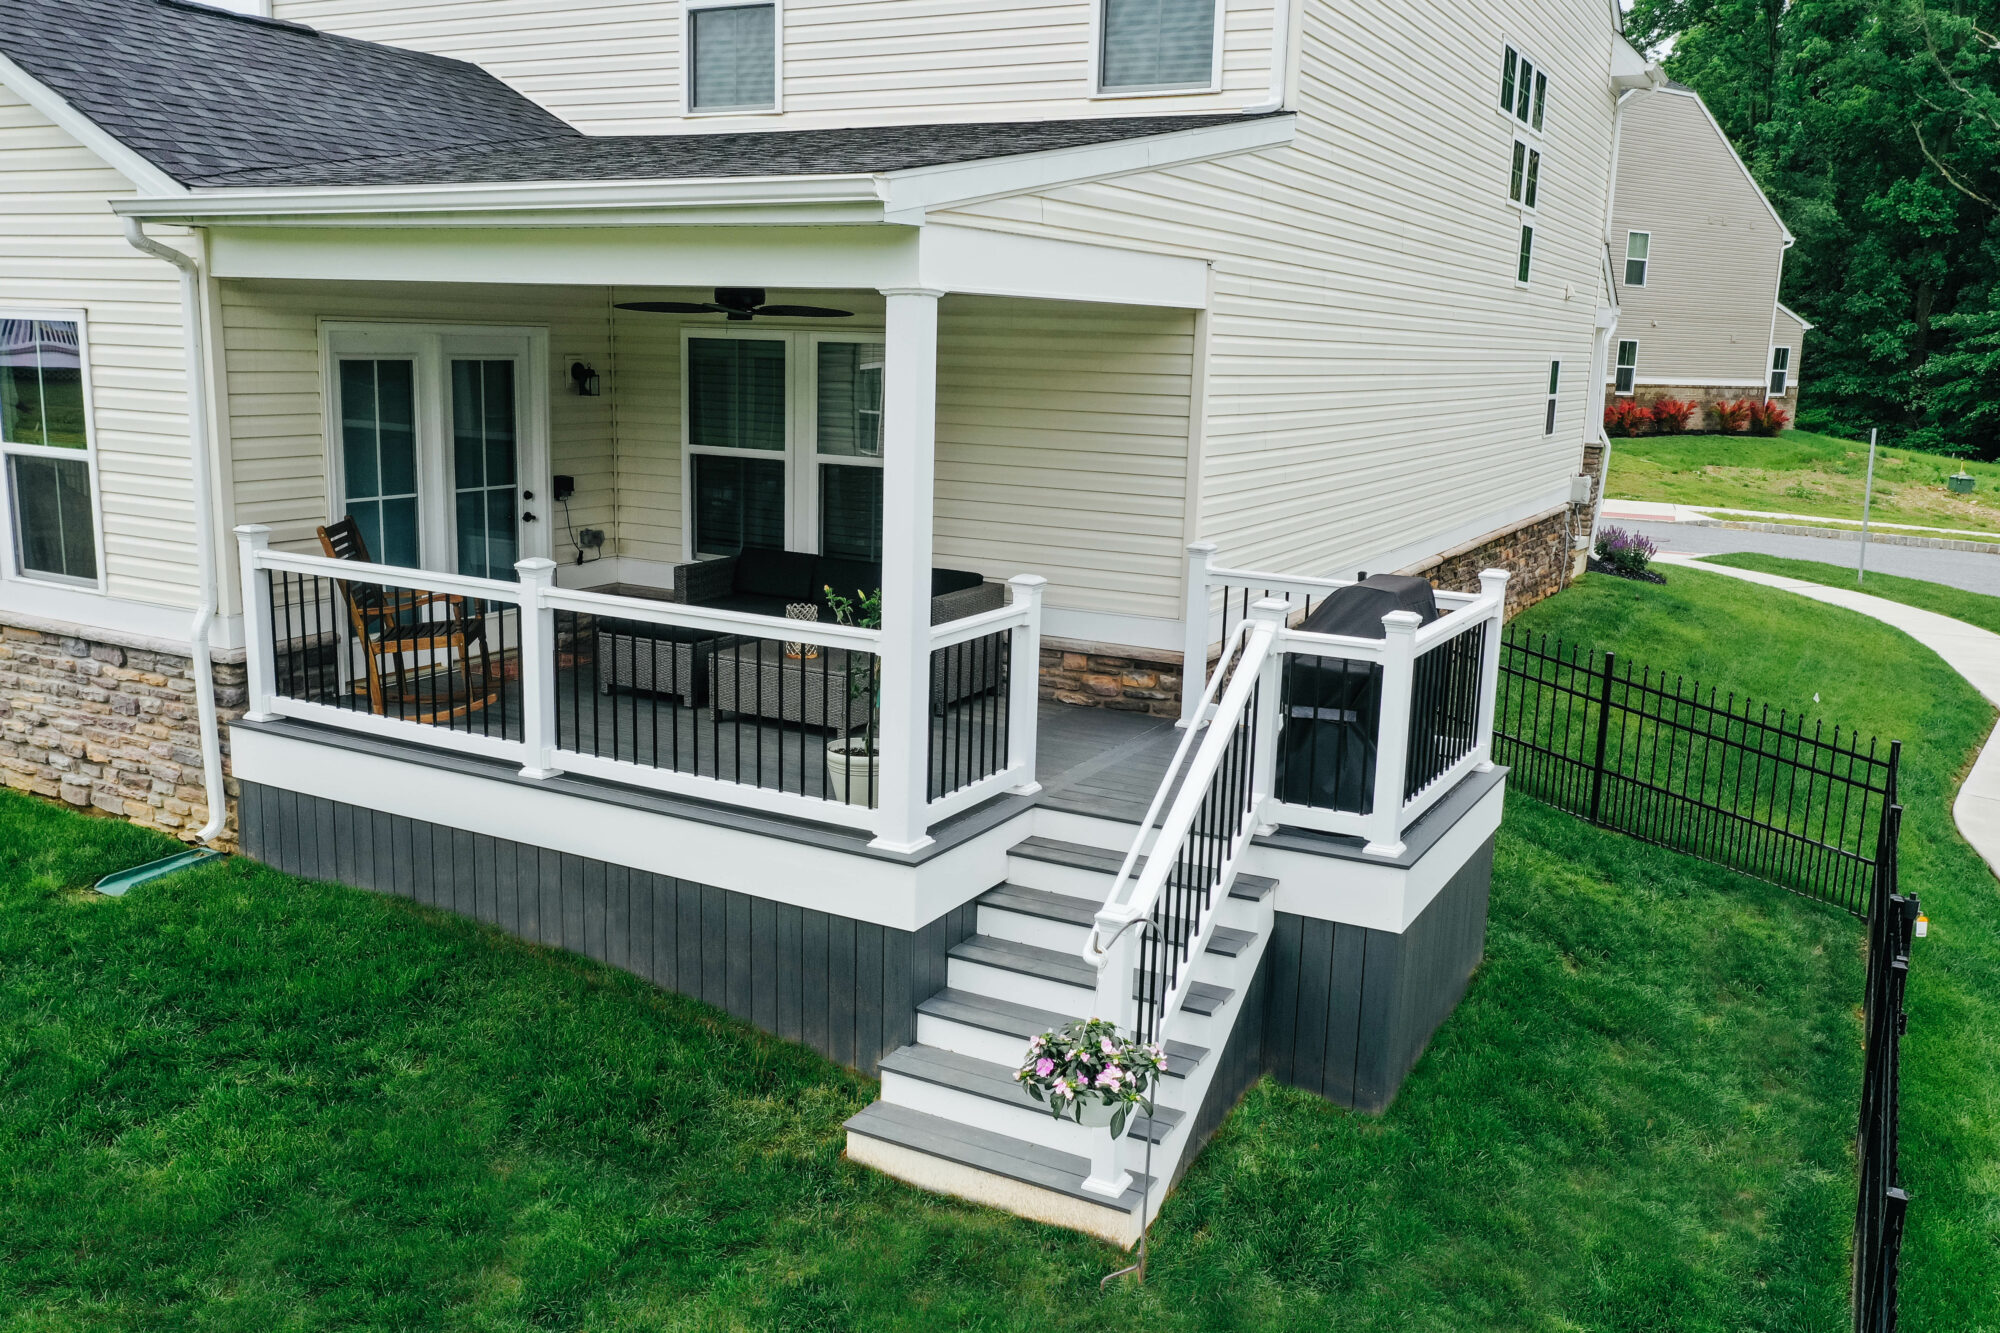 TimberTech Covered Deck with Vinyl railing